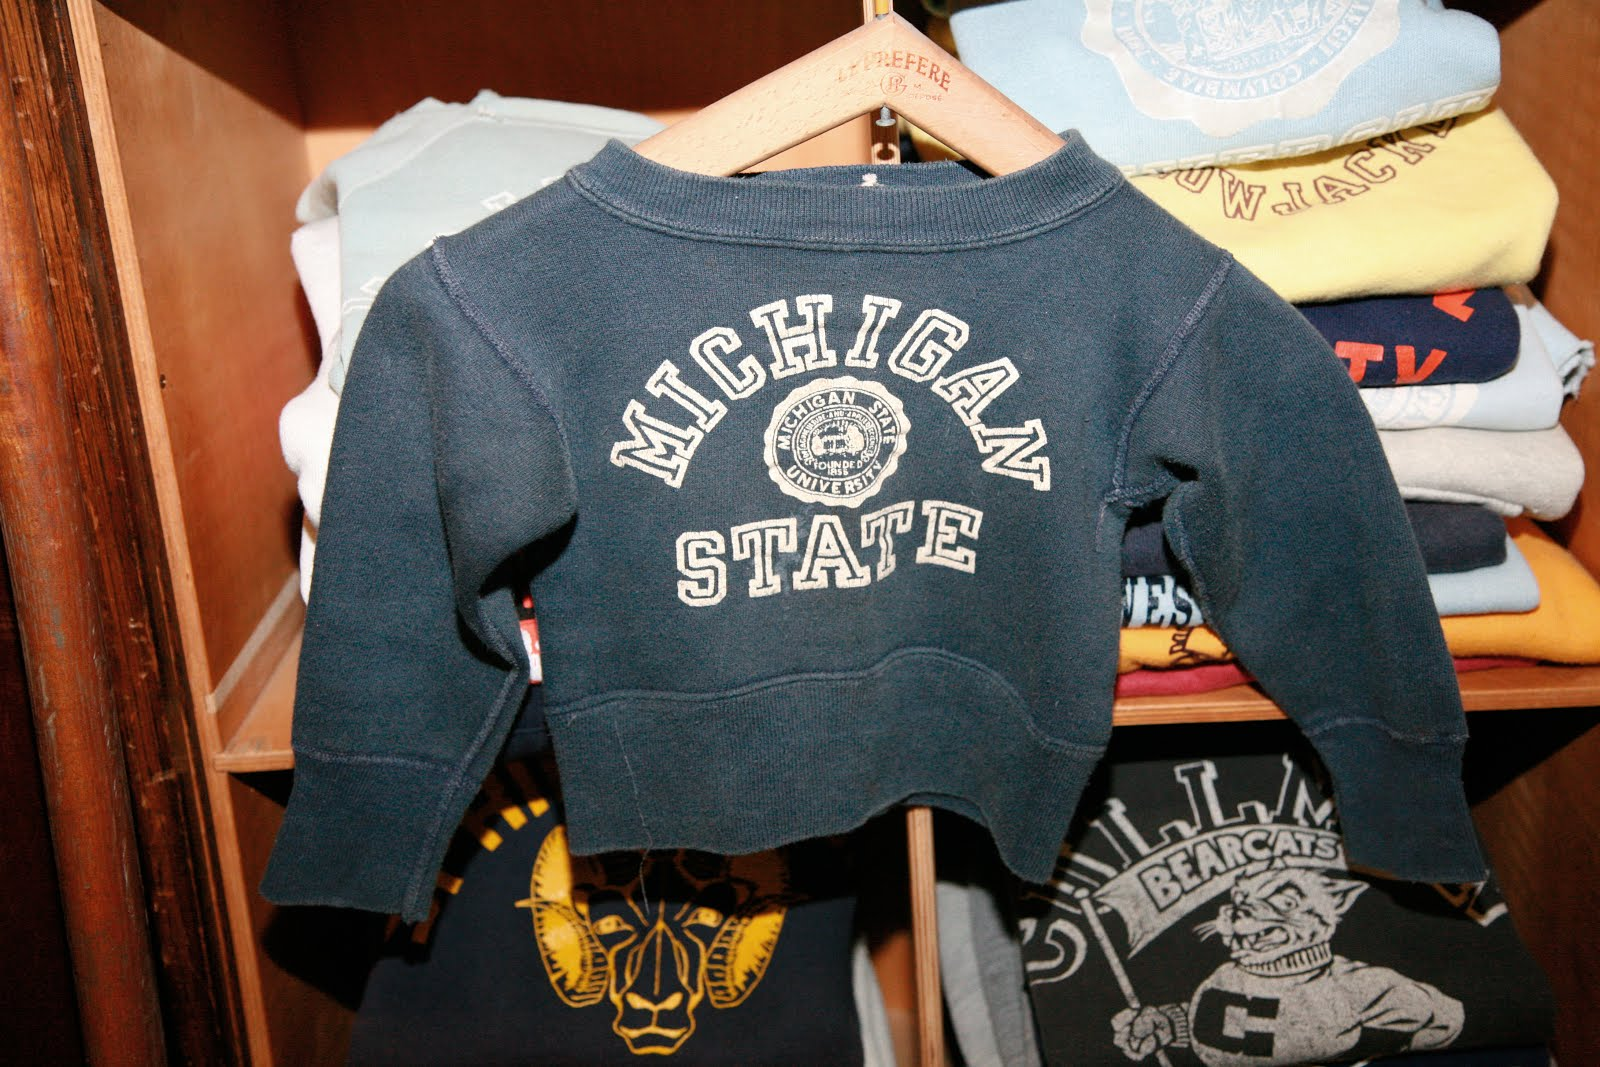 1950S COLLEGE SWEATSHIRT